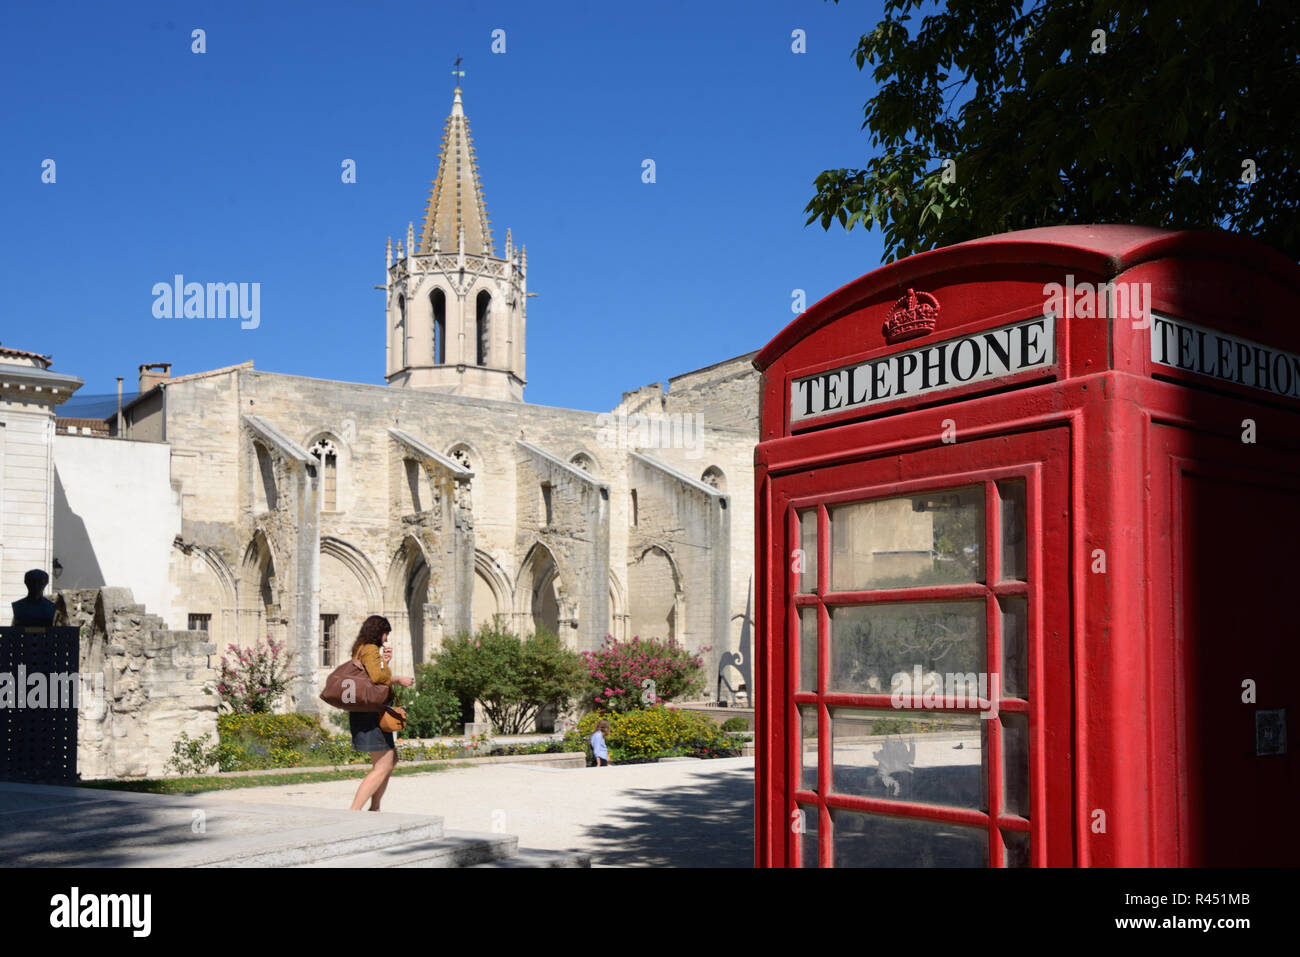 Church of Saint Martial, Park & Garden, & British Red Telephone Box on Agricol Perdiguier Square Avignon Provence France - Stock Image